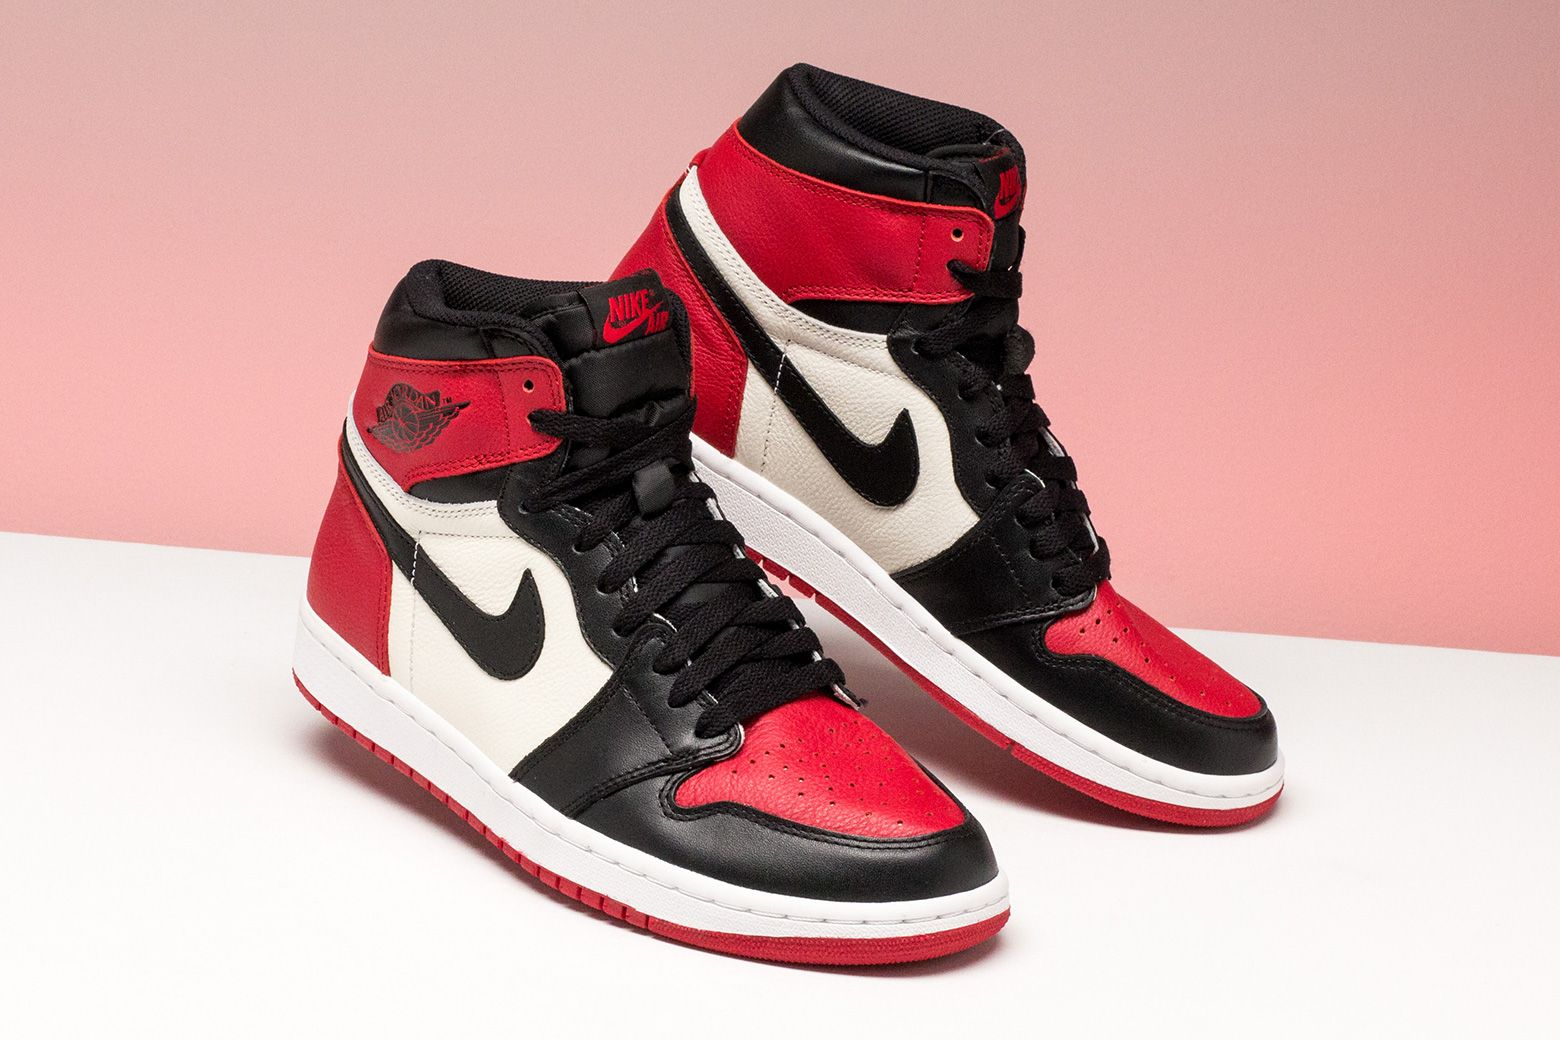 9f0d4c26c9fce Jordan 1 Retro High 'Bred Toe' - Size 7 in 2019 | Air Jordan ...